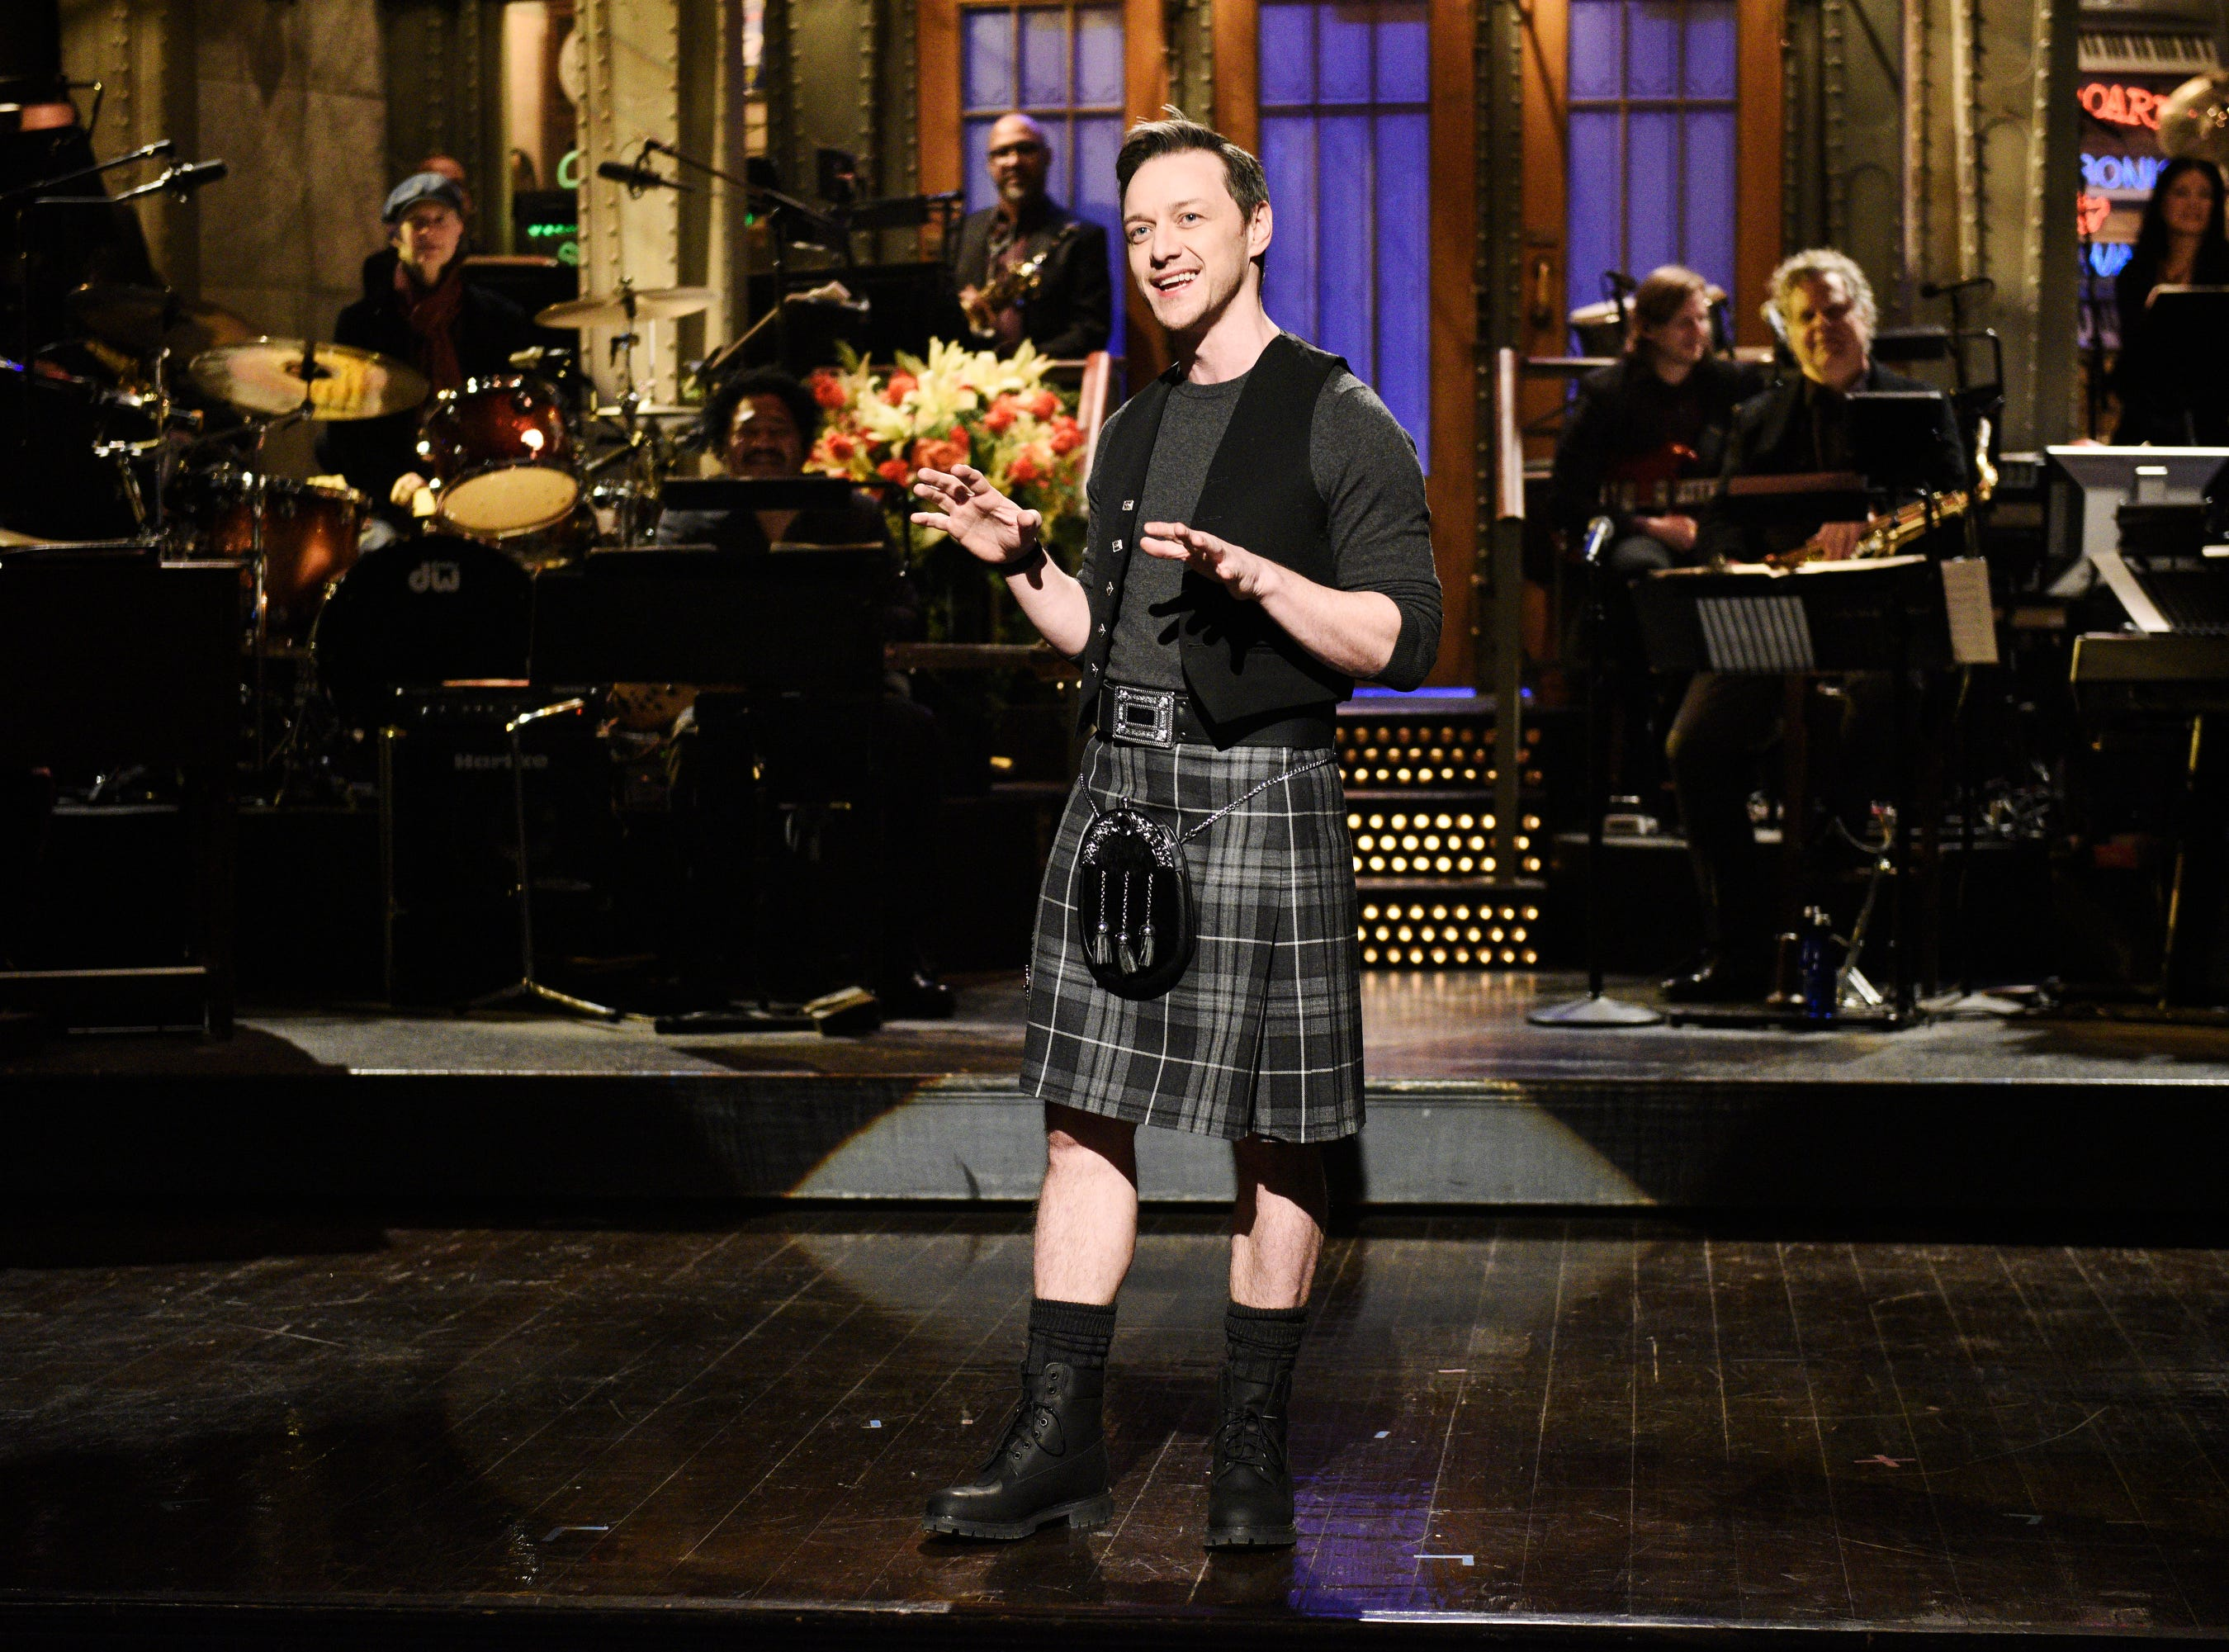 James McAvoy, who hosted the Jan. 26 episode, paid homage to his homeland of Scotland, delivering his monologue in a kilt.